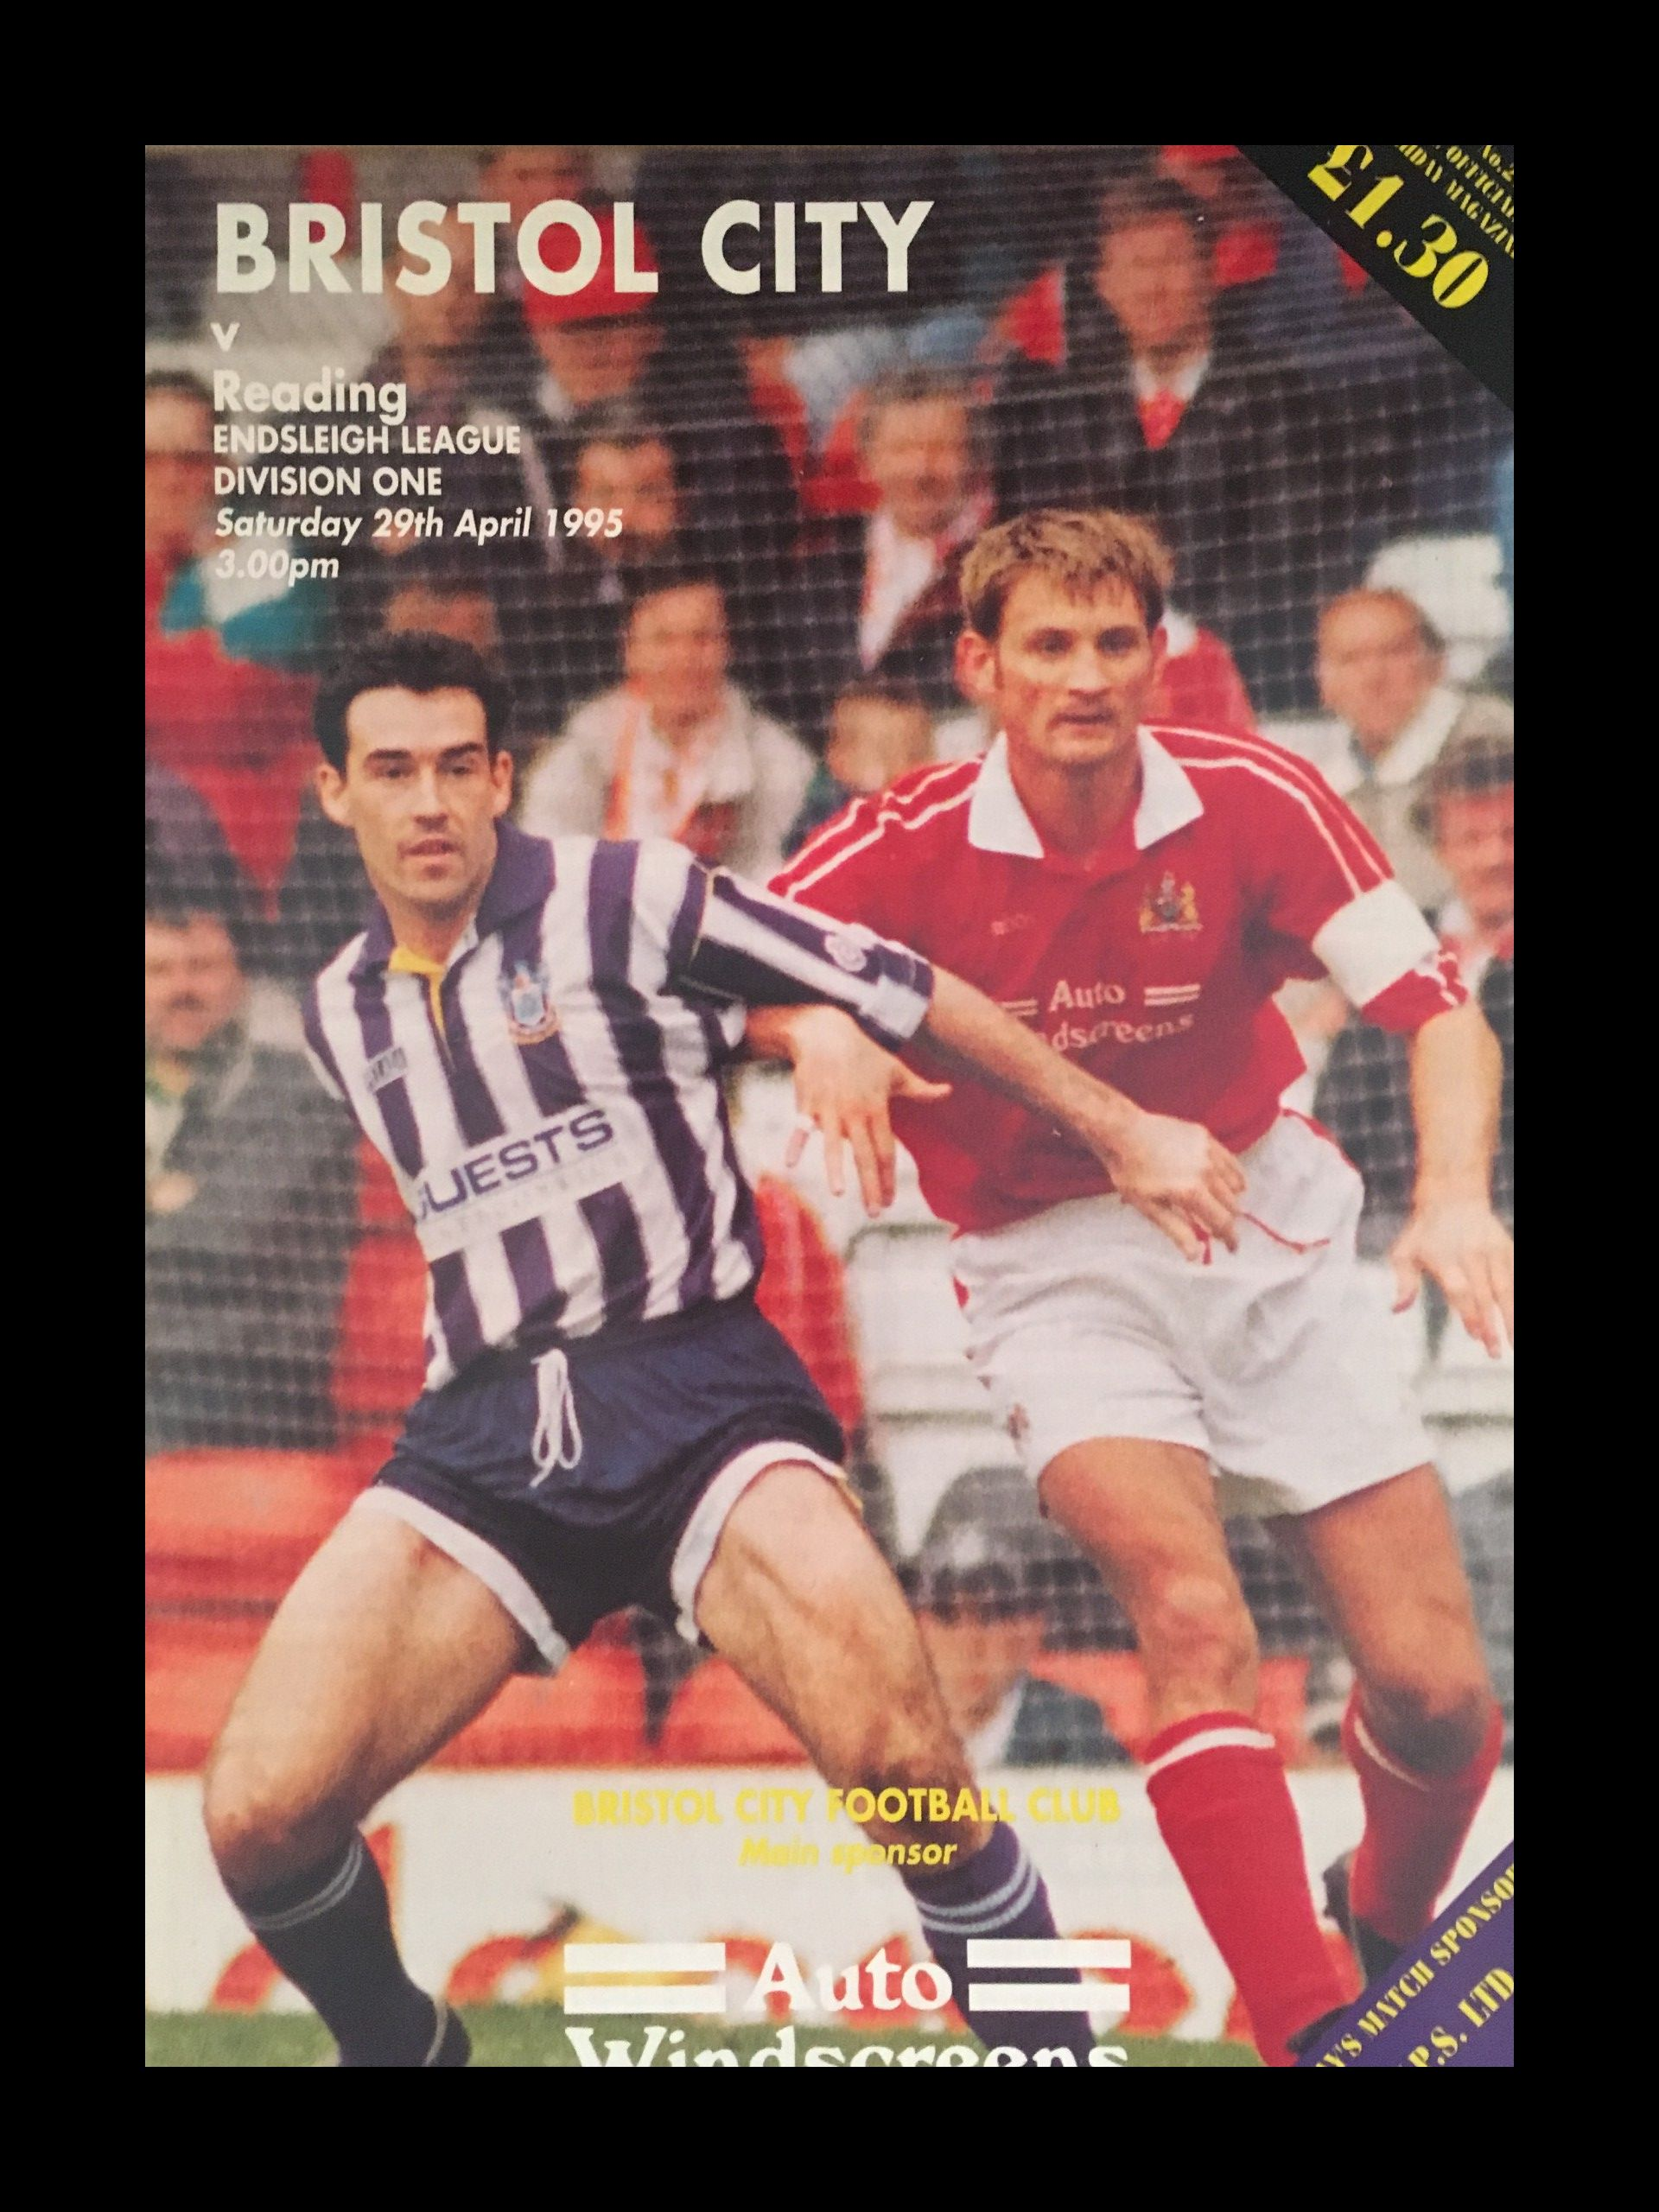 Bristol City v Reading 29-04-1995 Programme